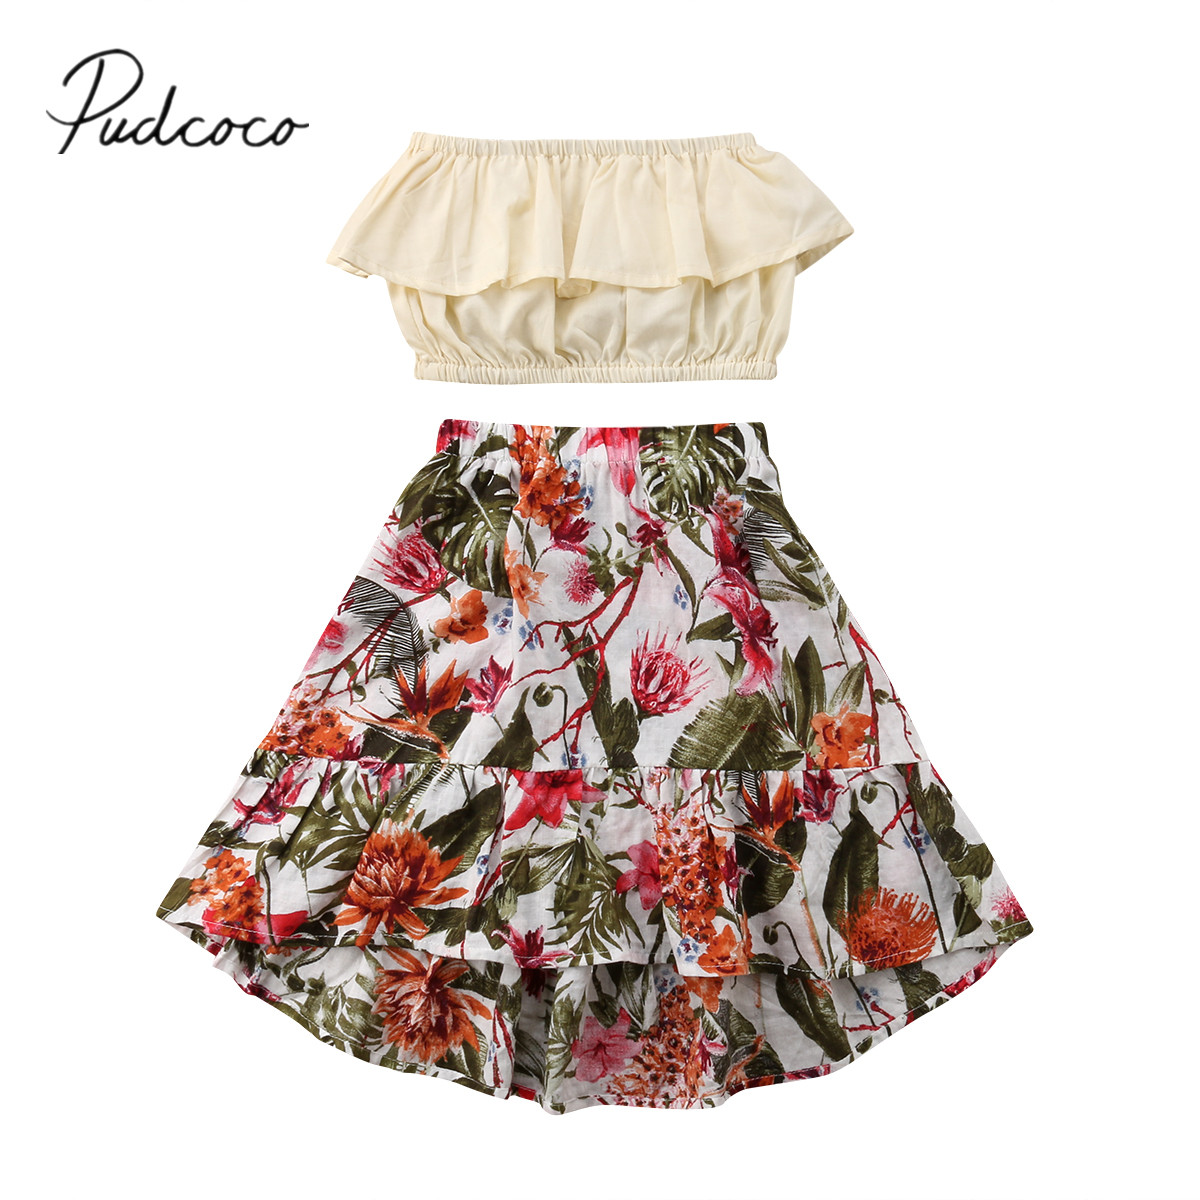 2018 Brand New Infant Toddler Child Kid Baby Girl Summer Clothes Chiffon Crops Short Top + Floral Skirt Outfit 2PCS Sets 1-7T svesta платье svesta r349lil лиловый page 3 page 3 page 1